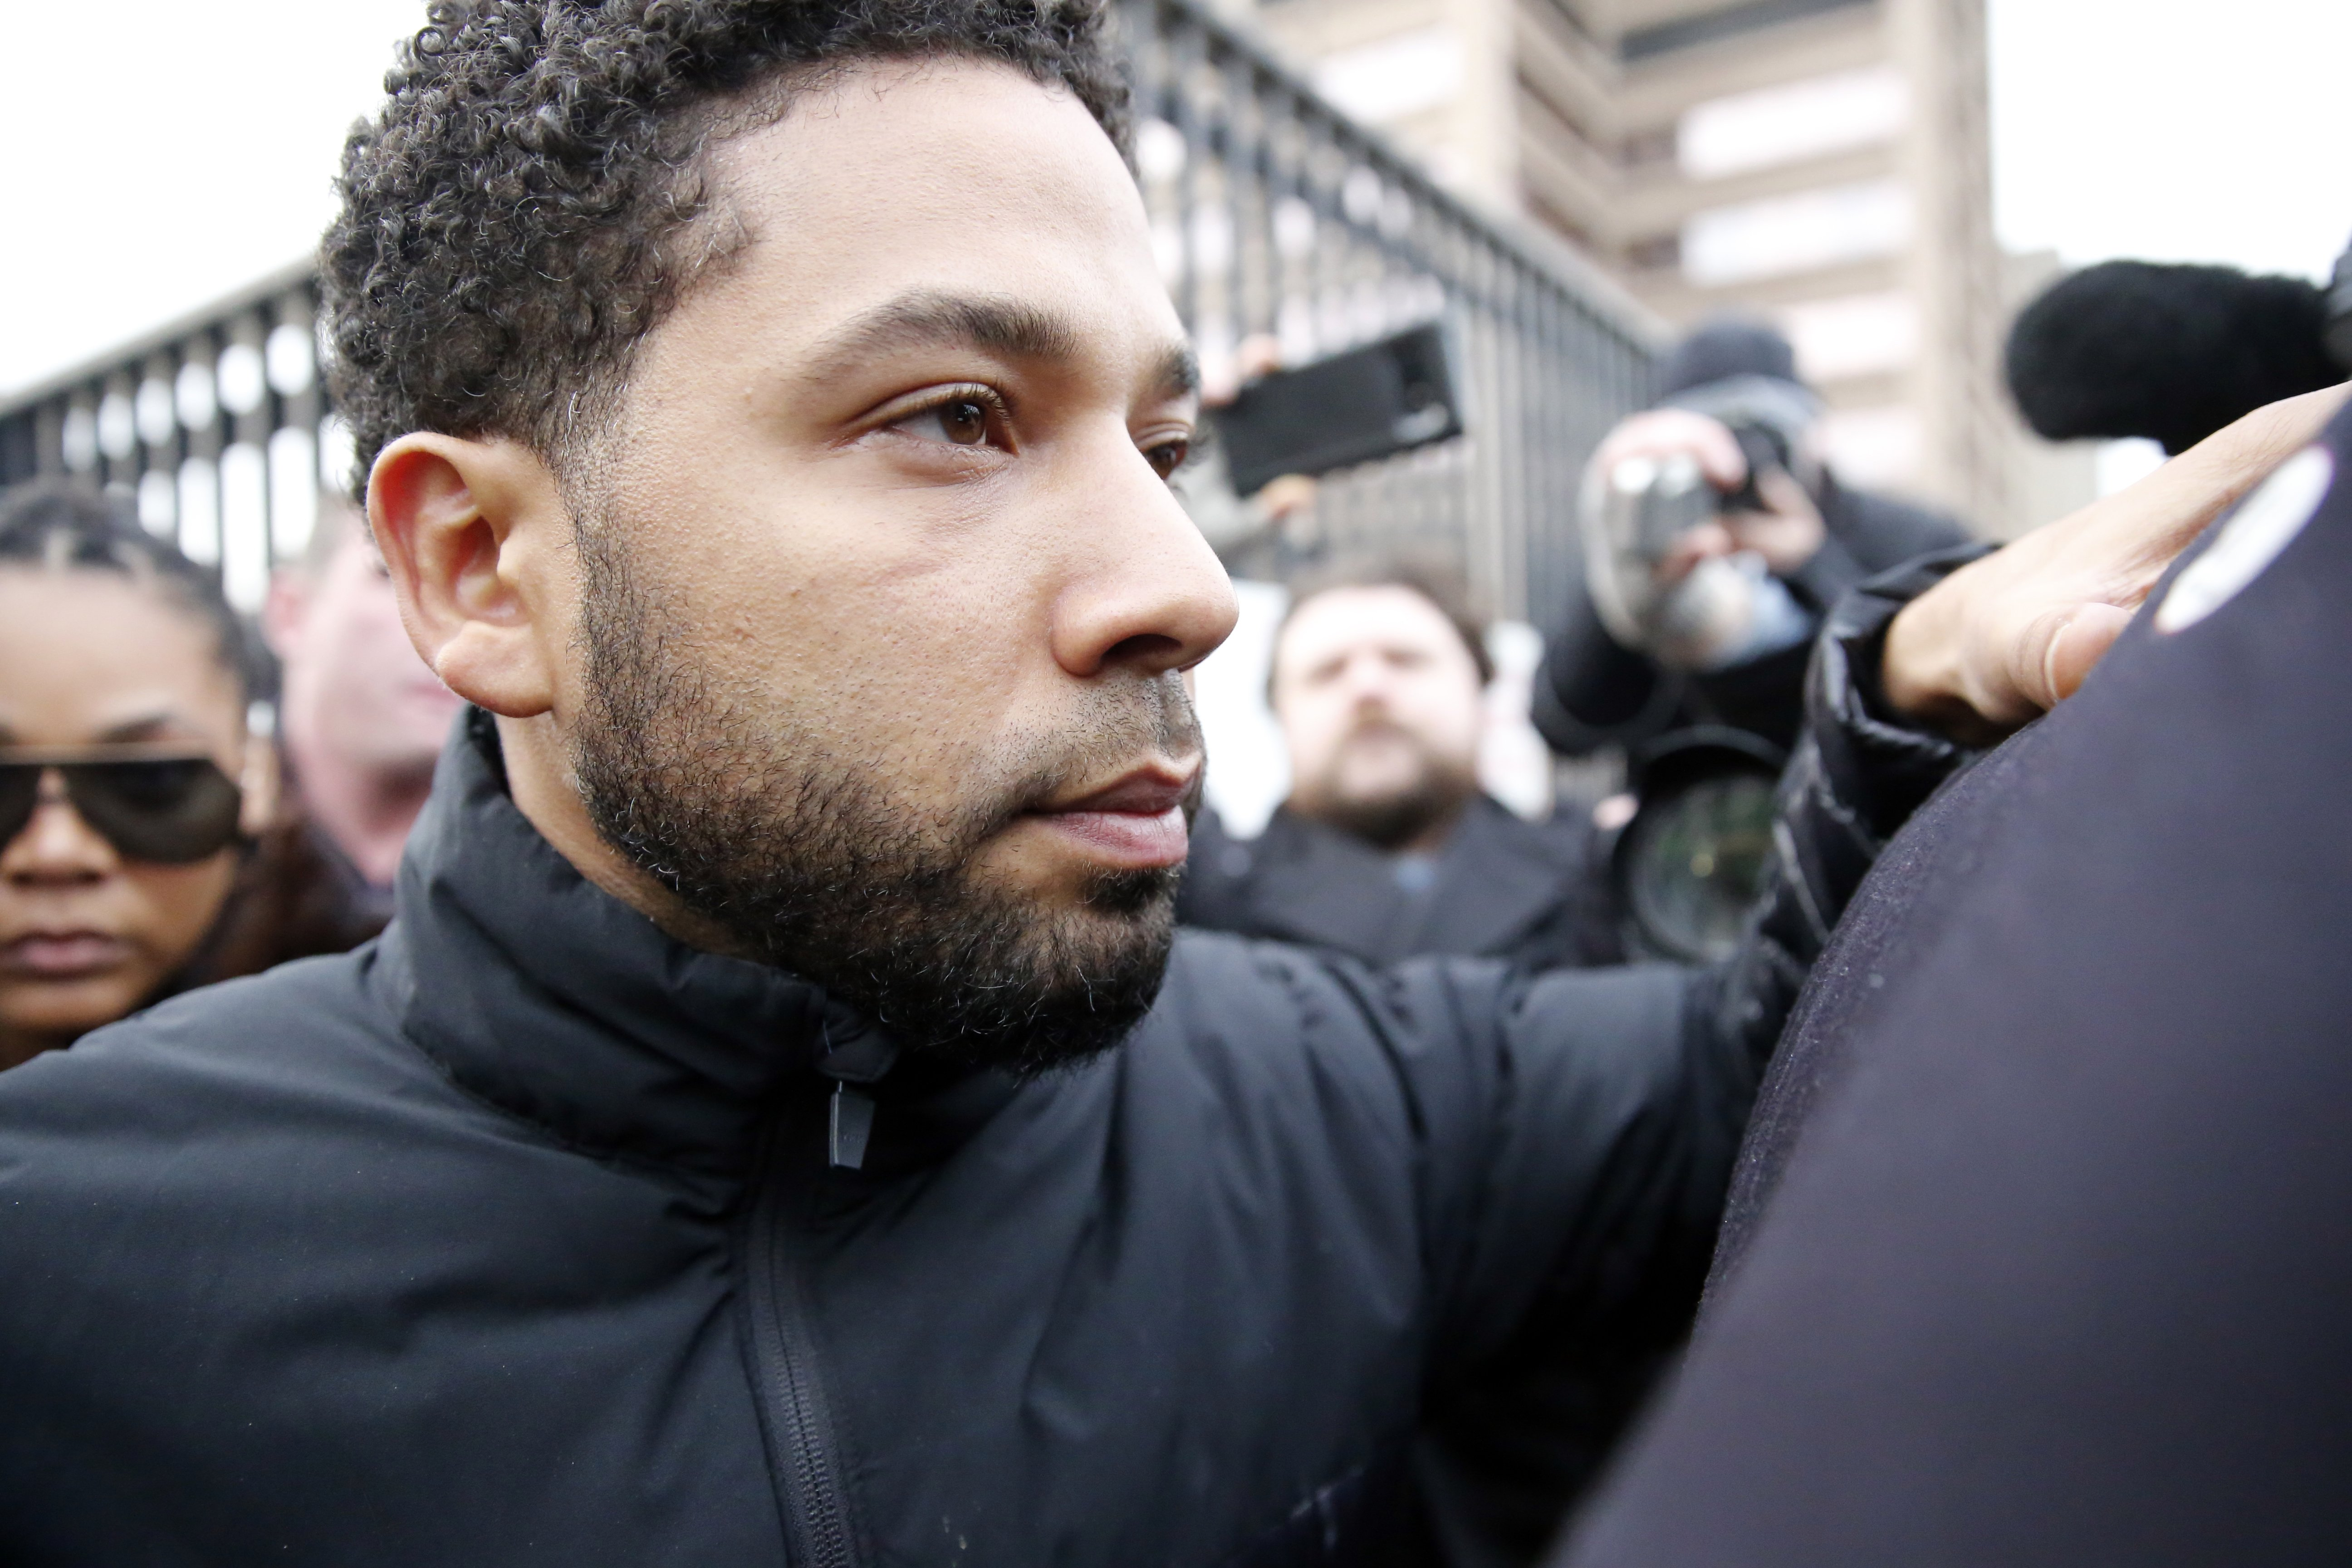 Jussie Smollett leaves Cook County jail after posting bond on February 21, 2019. | Photo: GettyImages